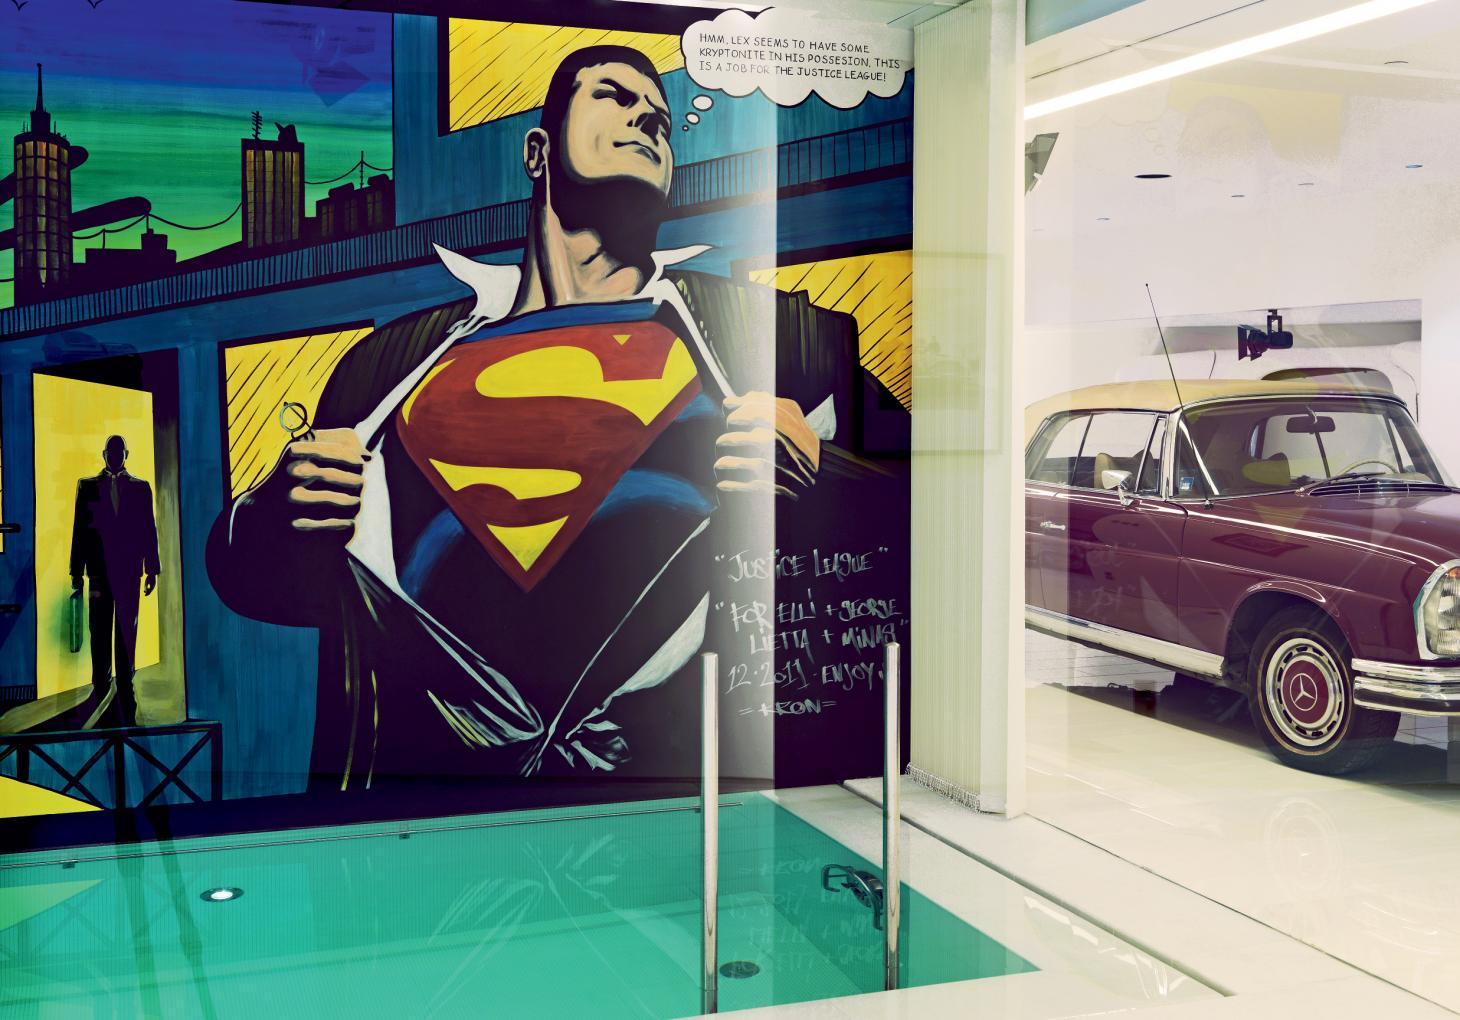 Superman mural by Kron Designs